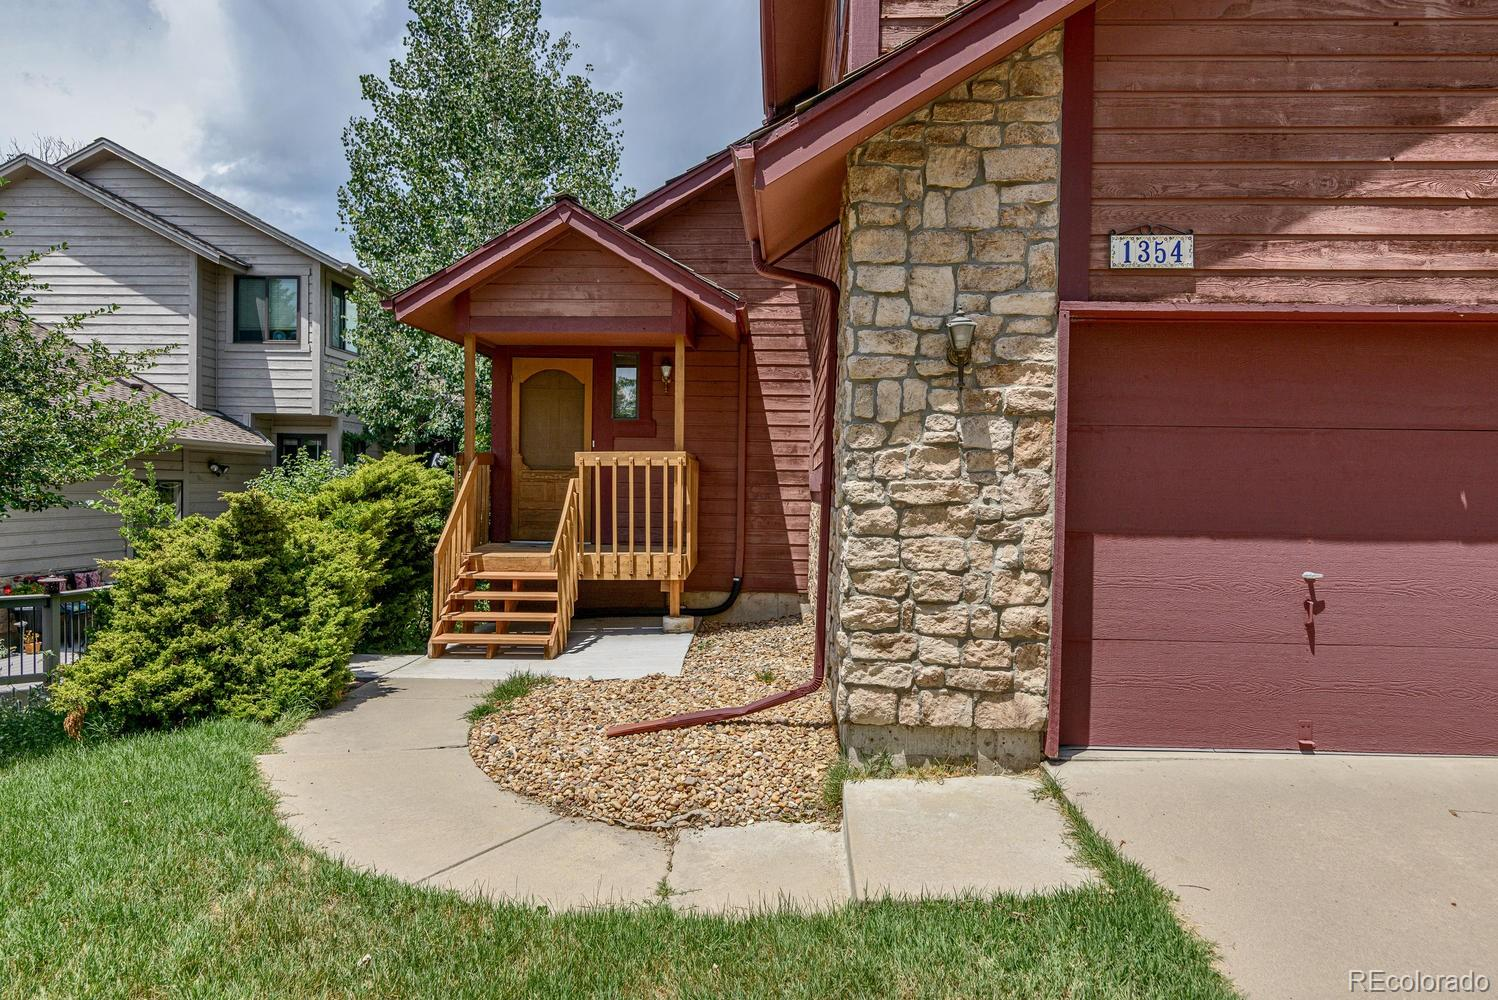 MLS# 5287137 - 4 - 1354 W Briarwood Avenue, Littleton, CO 80120